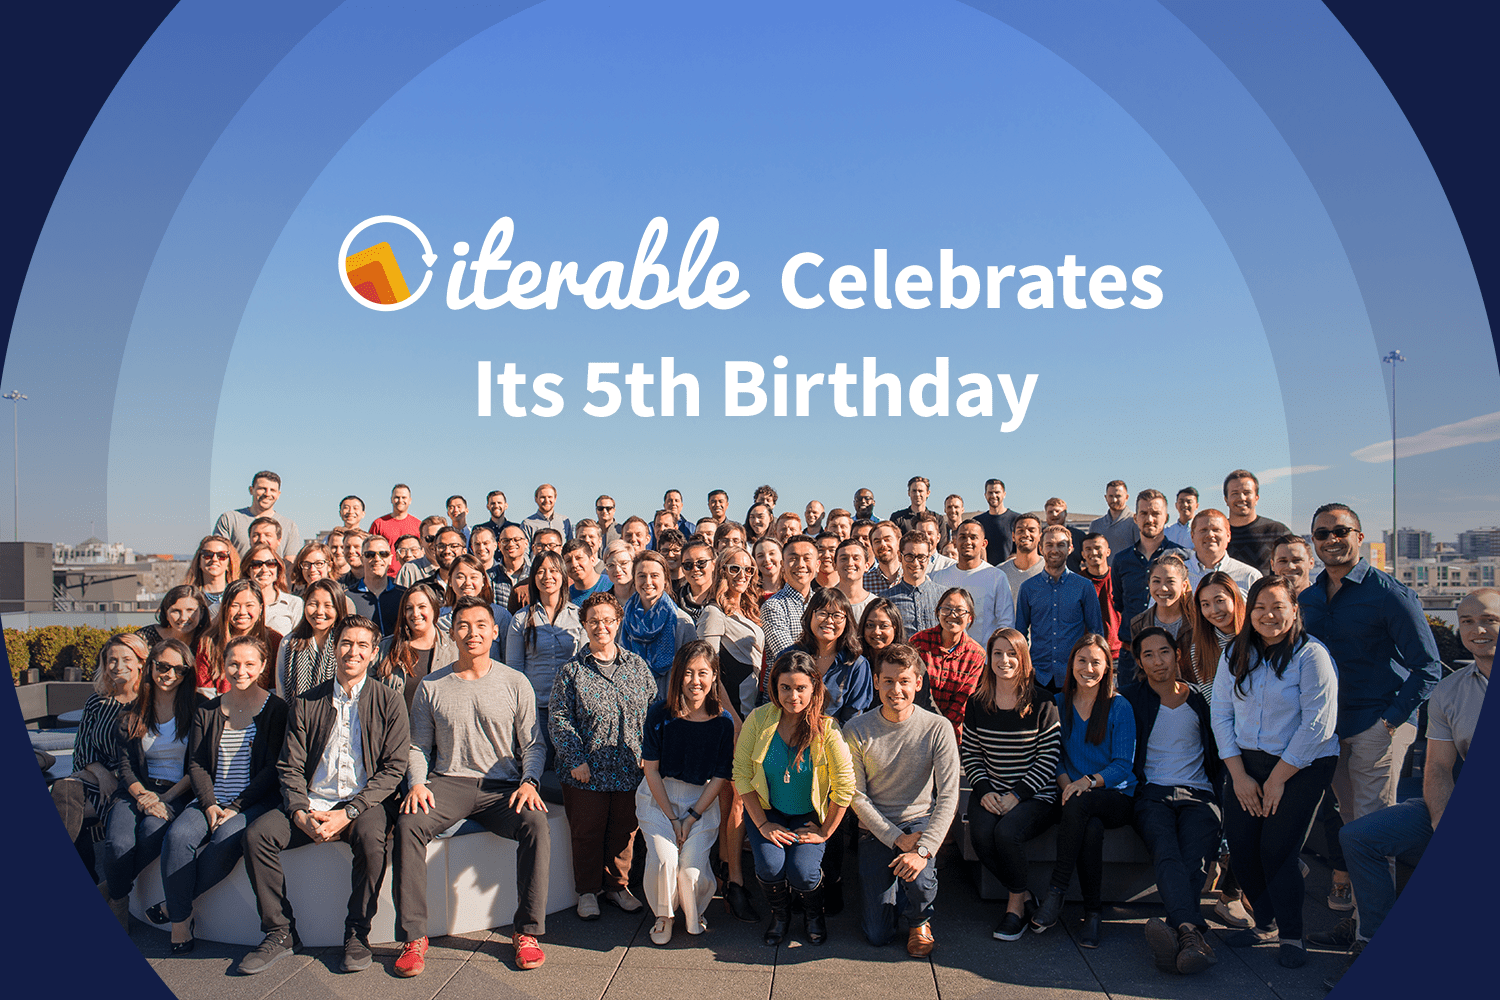 Celebrate Iterable's 5th Birthday at Activate